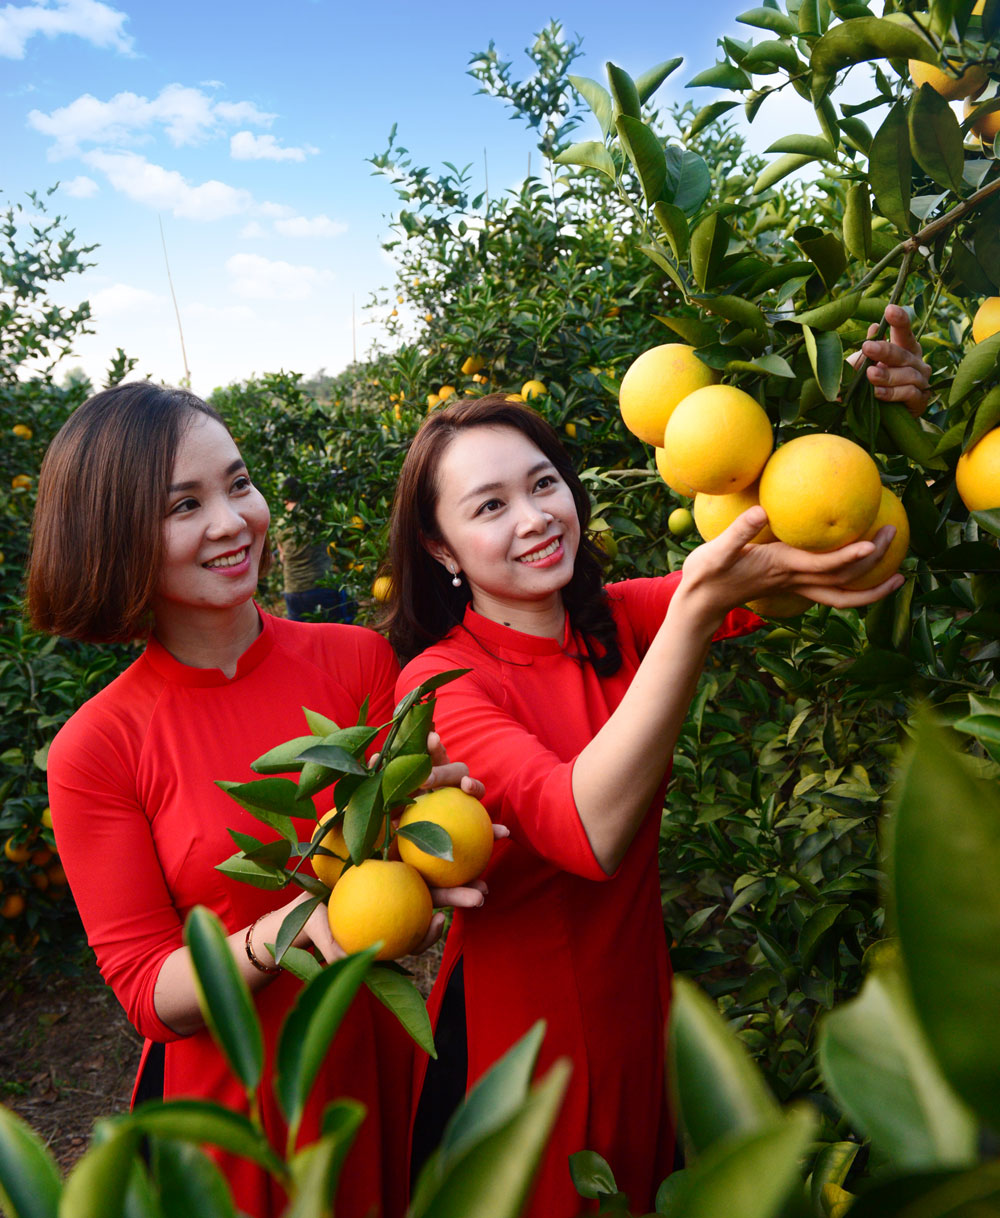 Fair of orange, grapefruit, typical products, Luc Ngan district, expanding trade, developing tourism, Bac Giang province